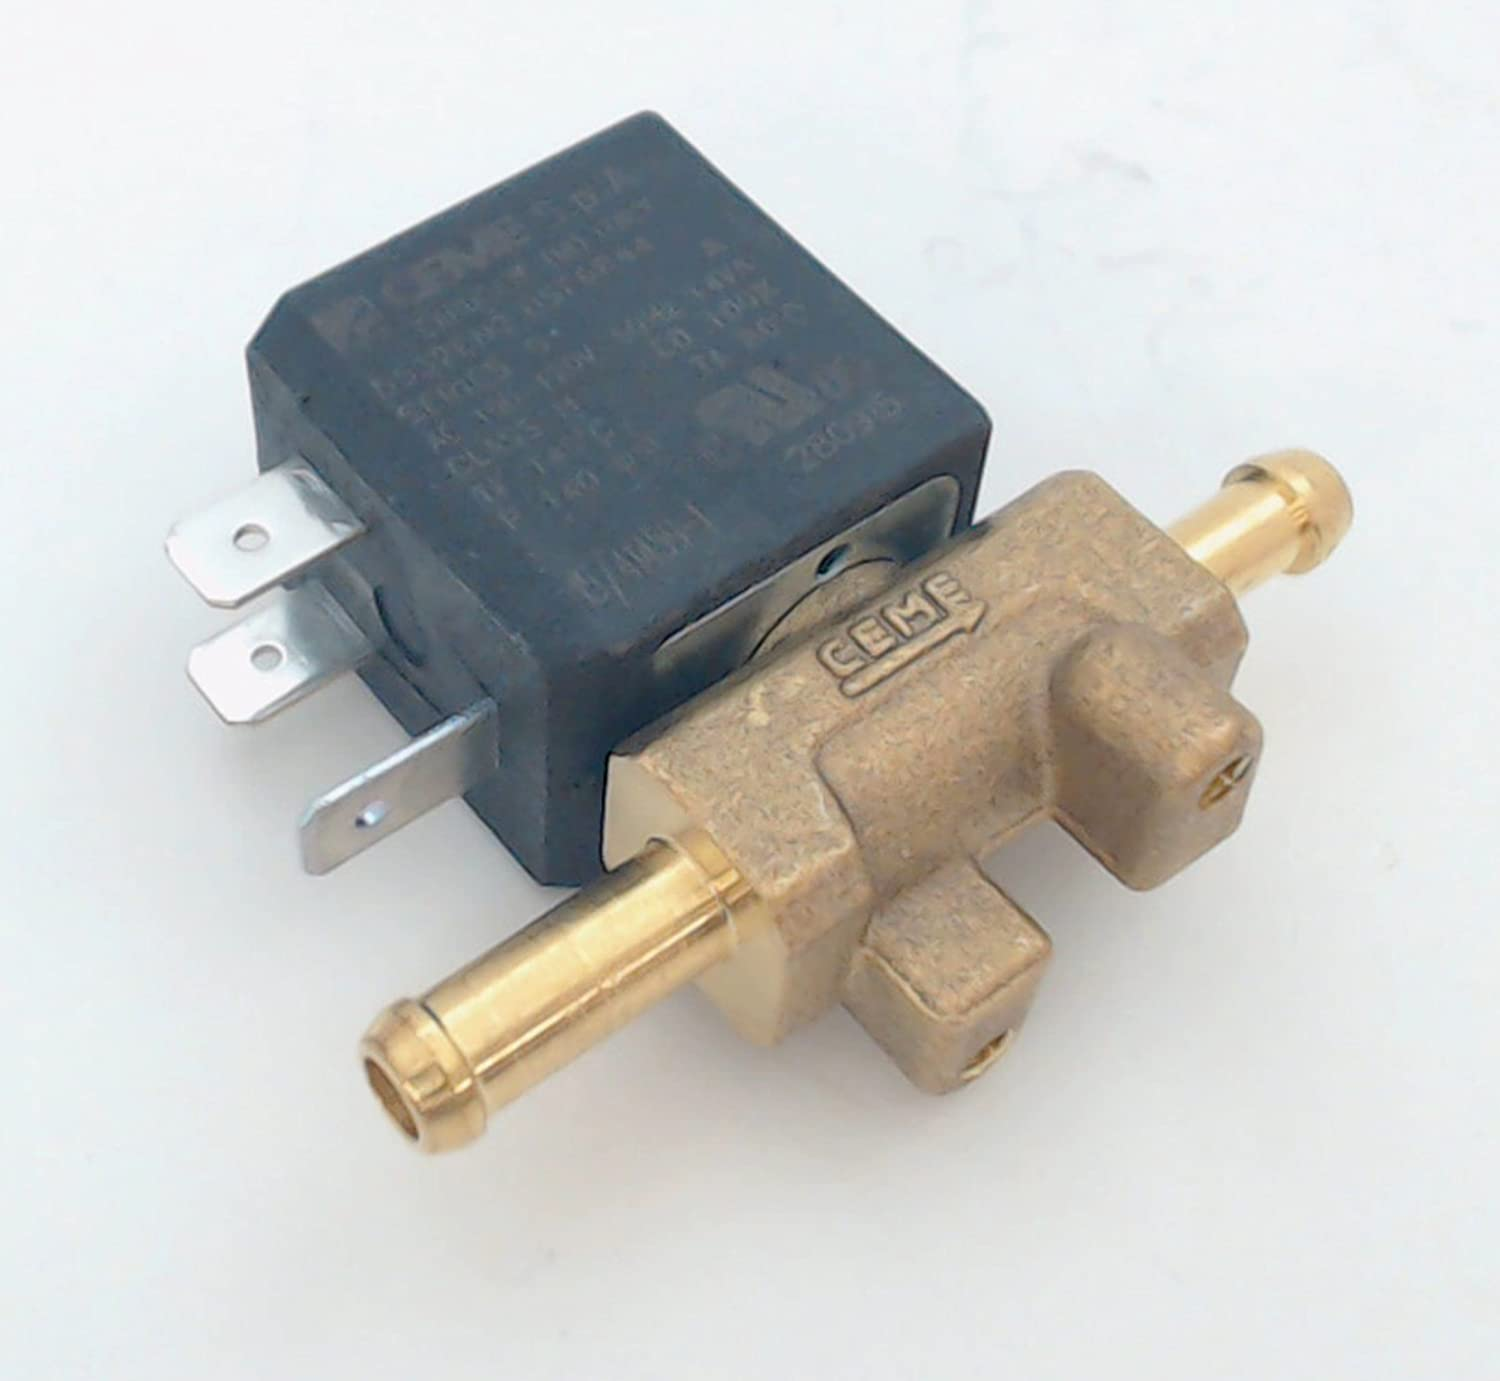 Bissell Commercial Shampooer Extractor Solenoid Valve 203-7436 for BG10 and 86T3